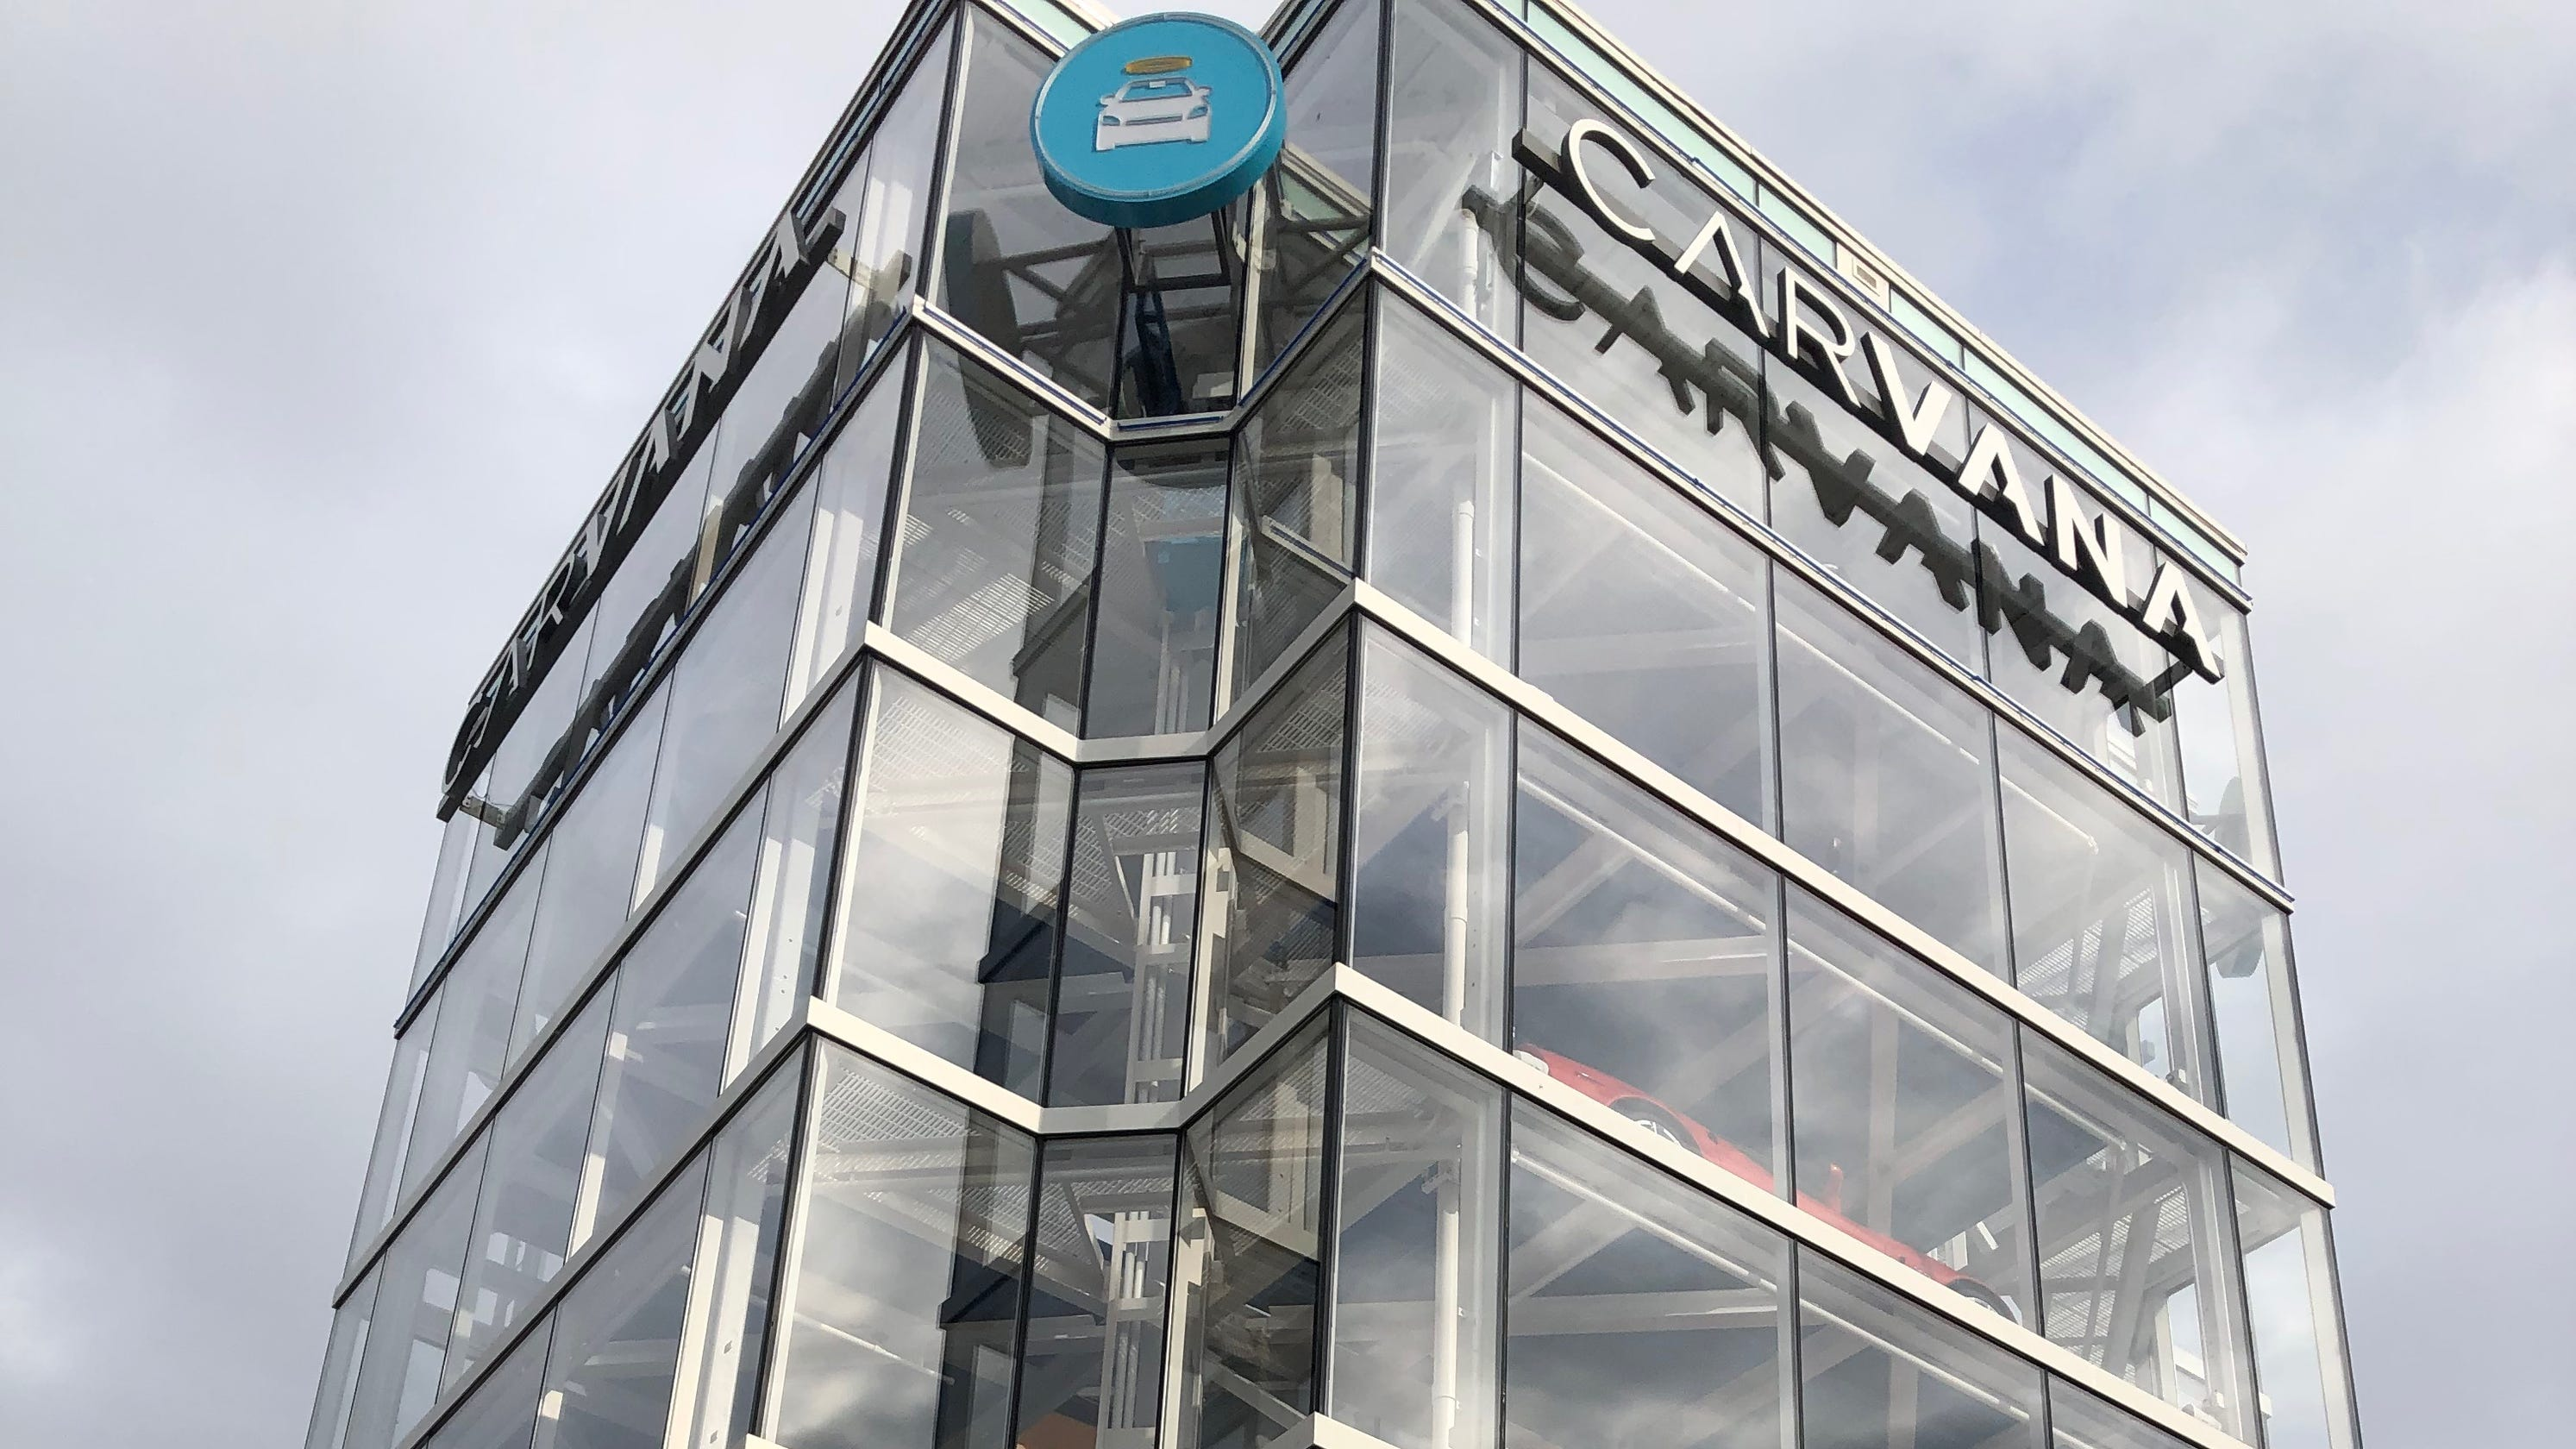 Carvana car vending machine now open near I-69 in Indianapolis